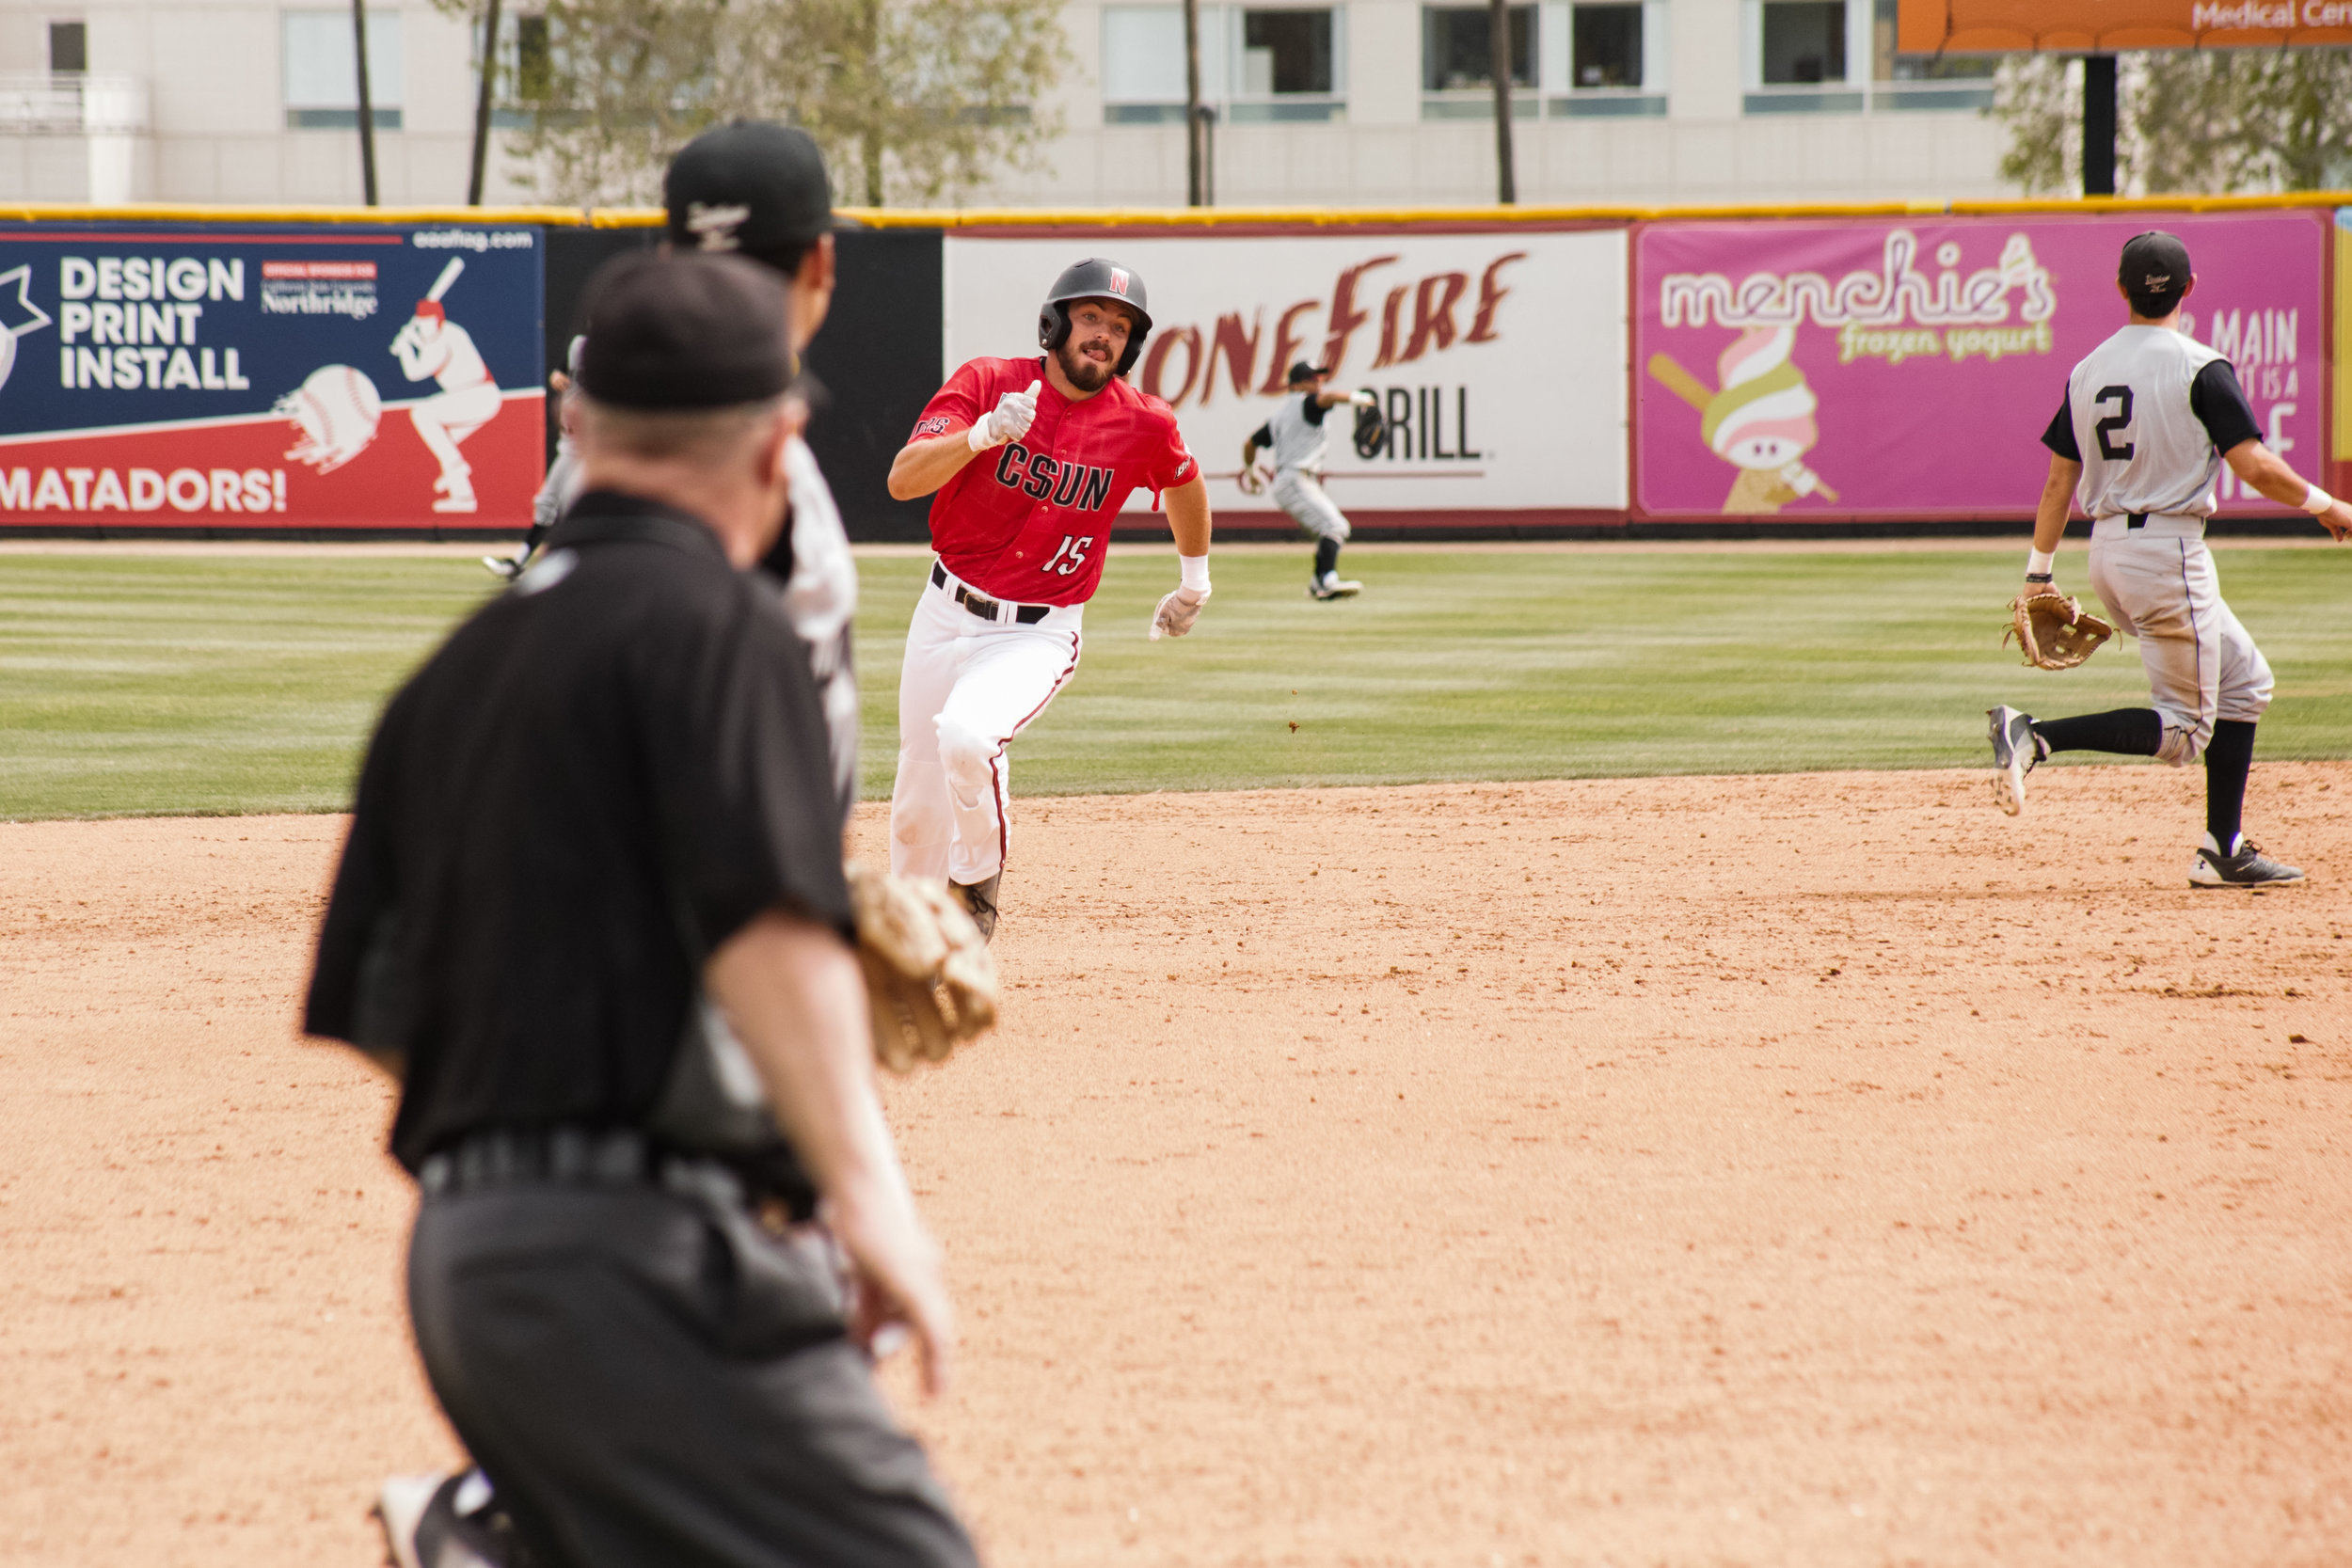 2018_04_15 - Baseball vs Long Beach State (max reso)-9.jpg